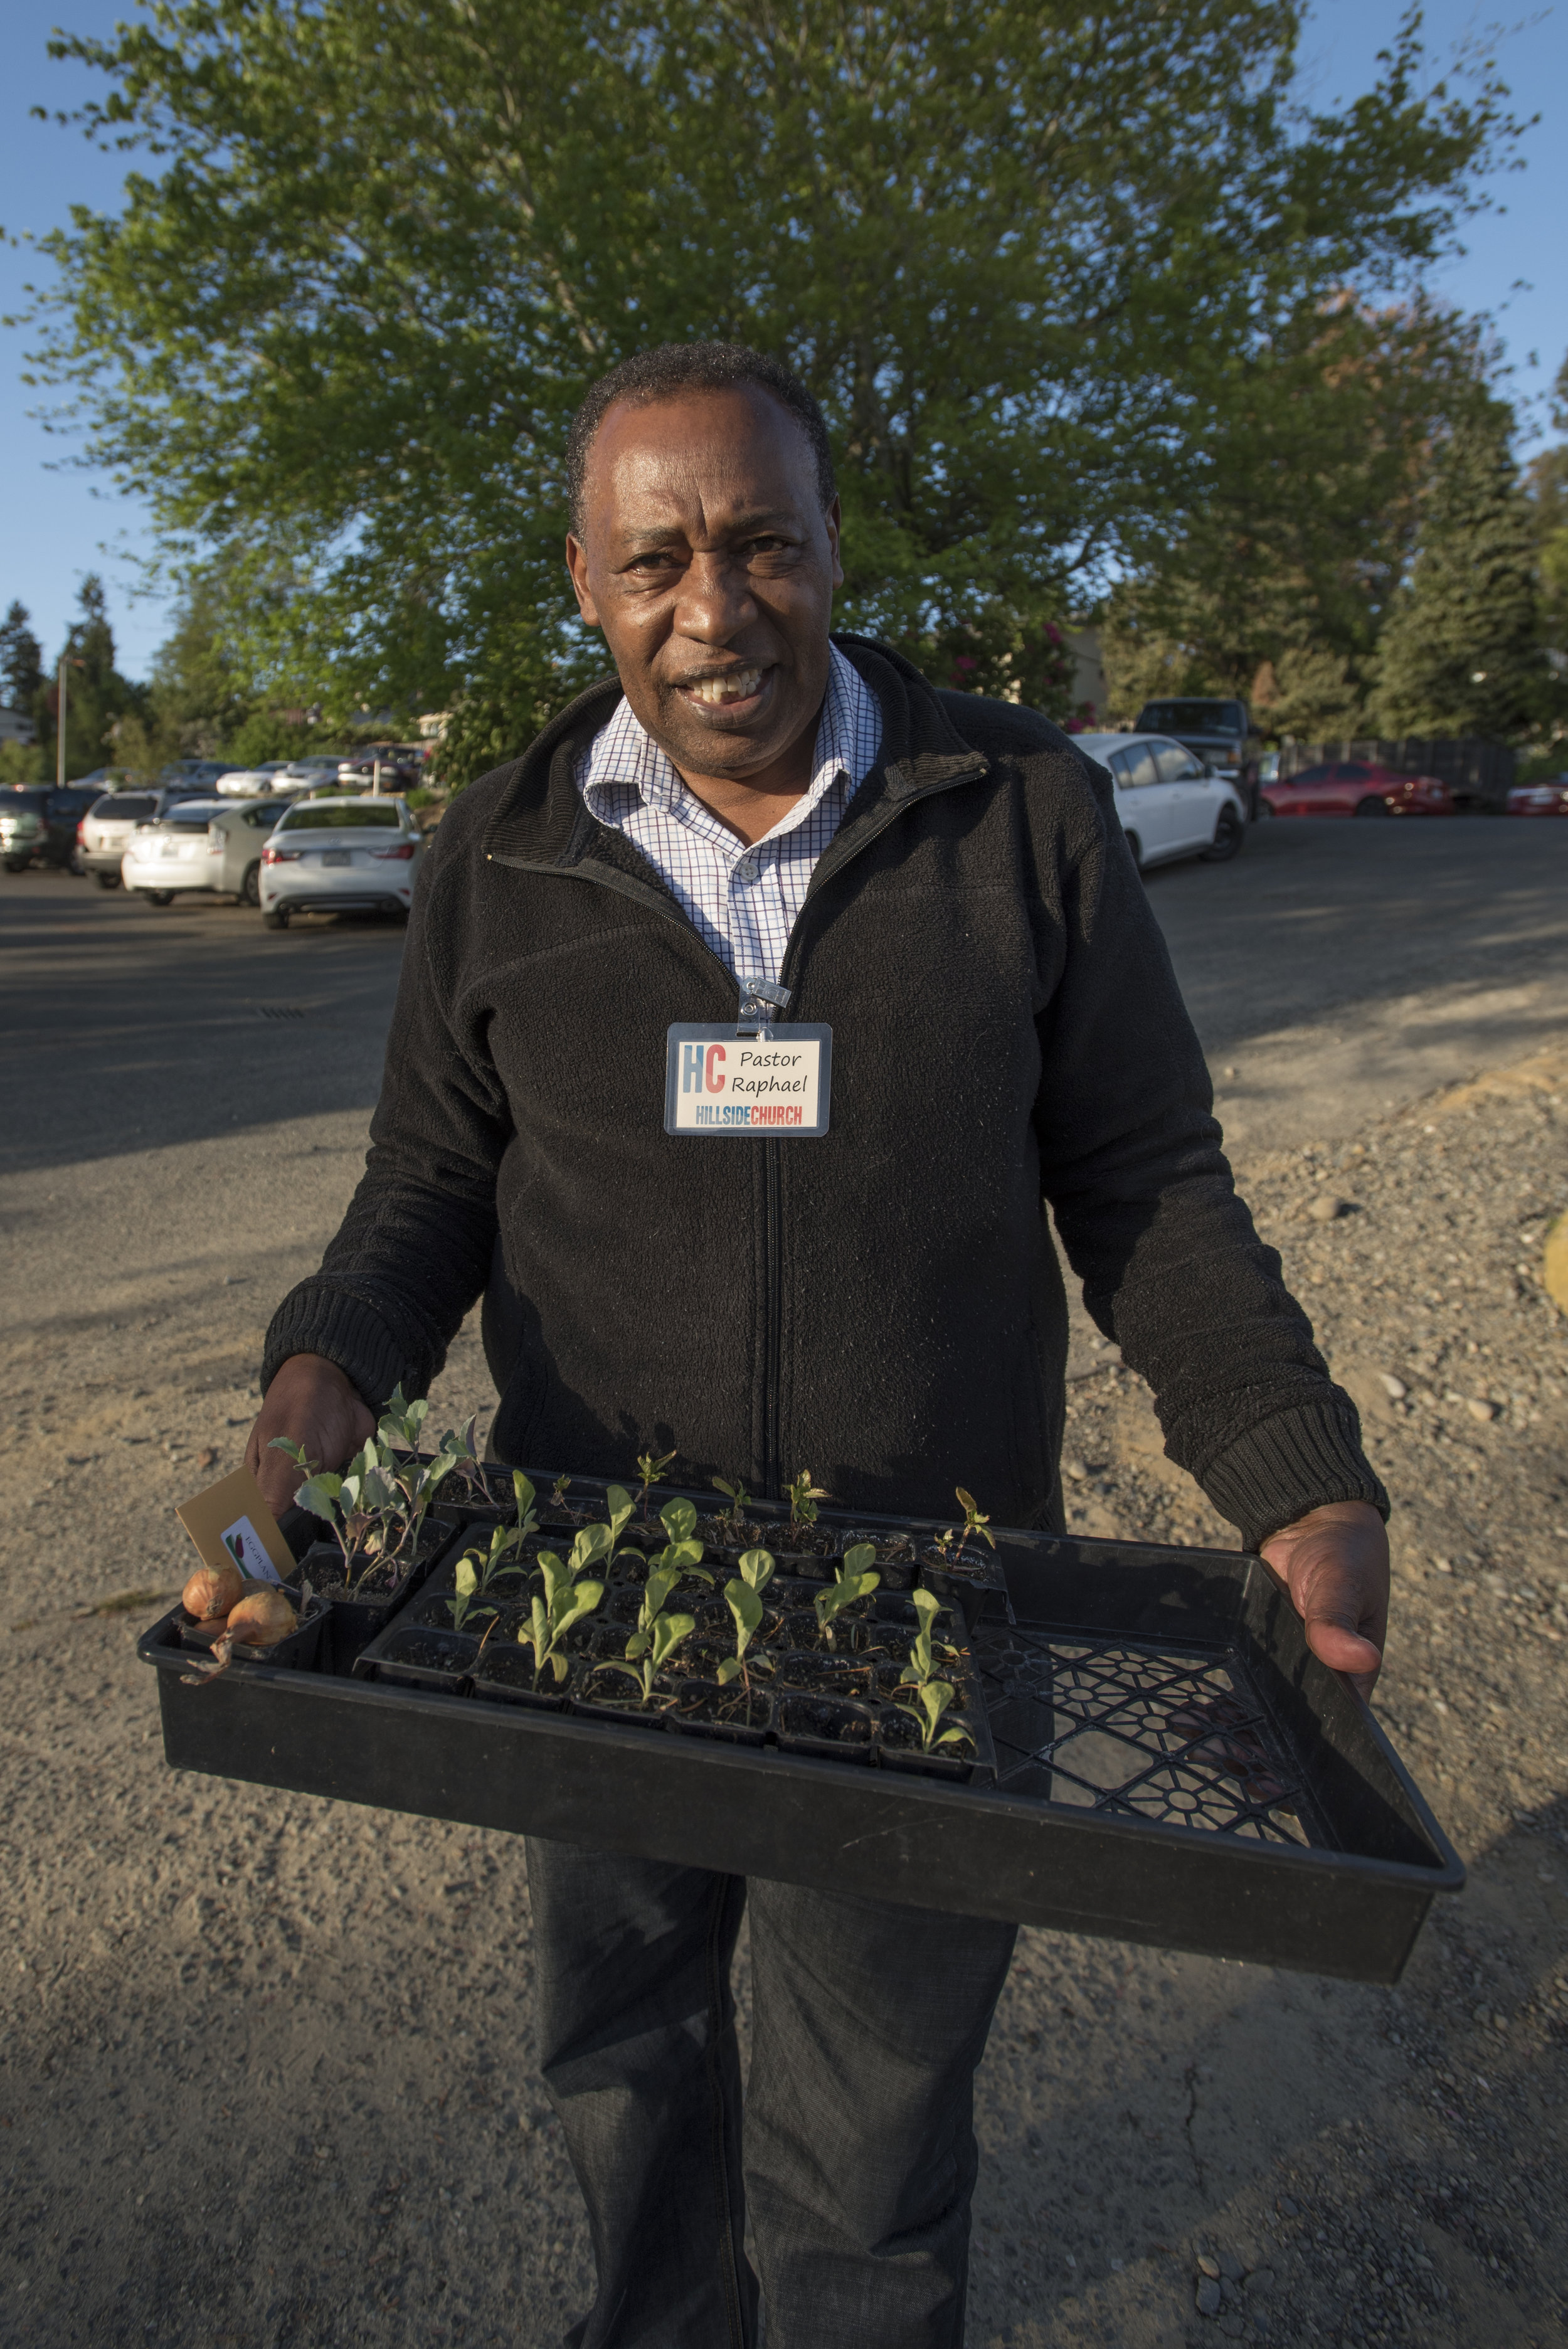 Pastor Raphael of Kent Hillside church holds a tray of plant starts. Photo © Hannah Letinich